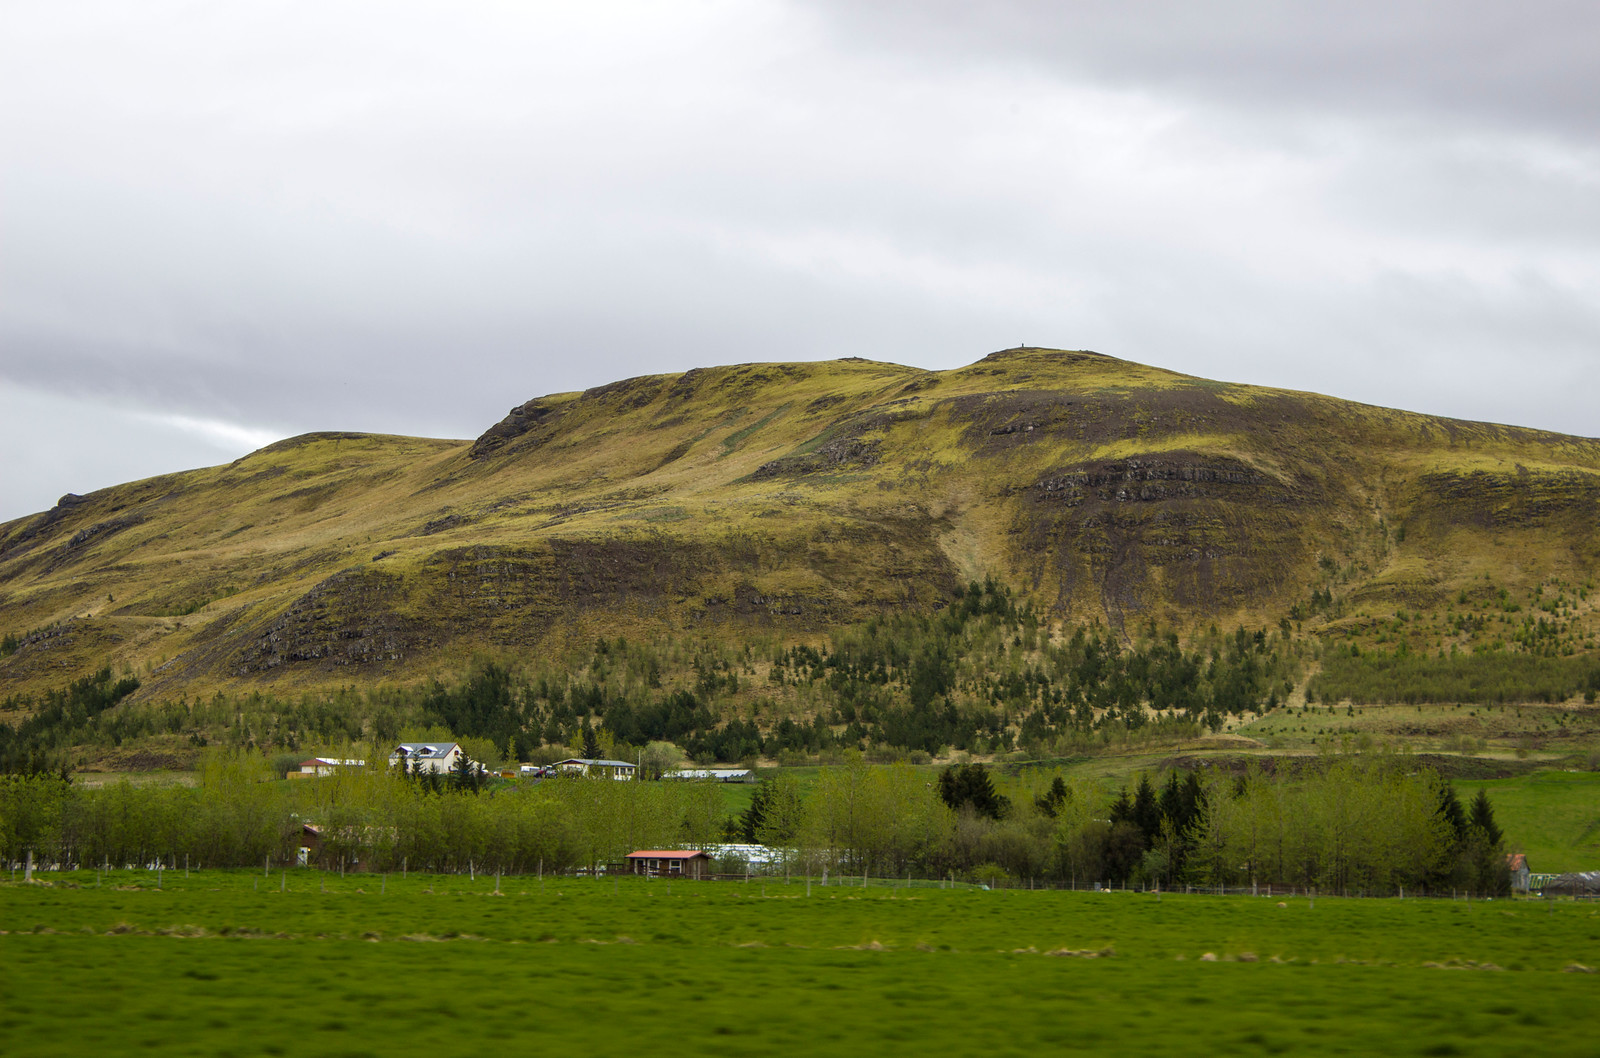 The scenery of rural Iceland - Mountains, lush greenery, farm houses